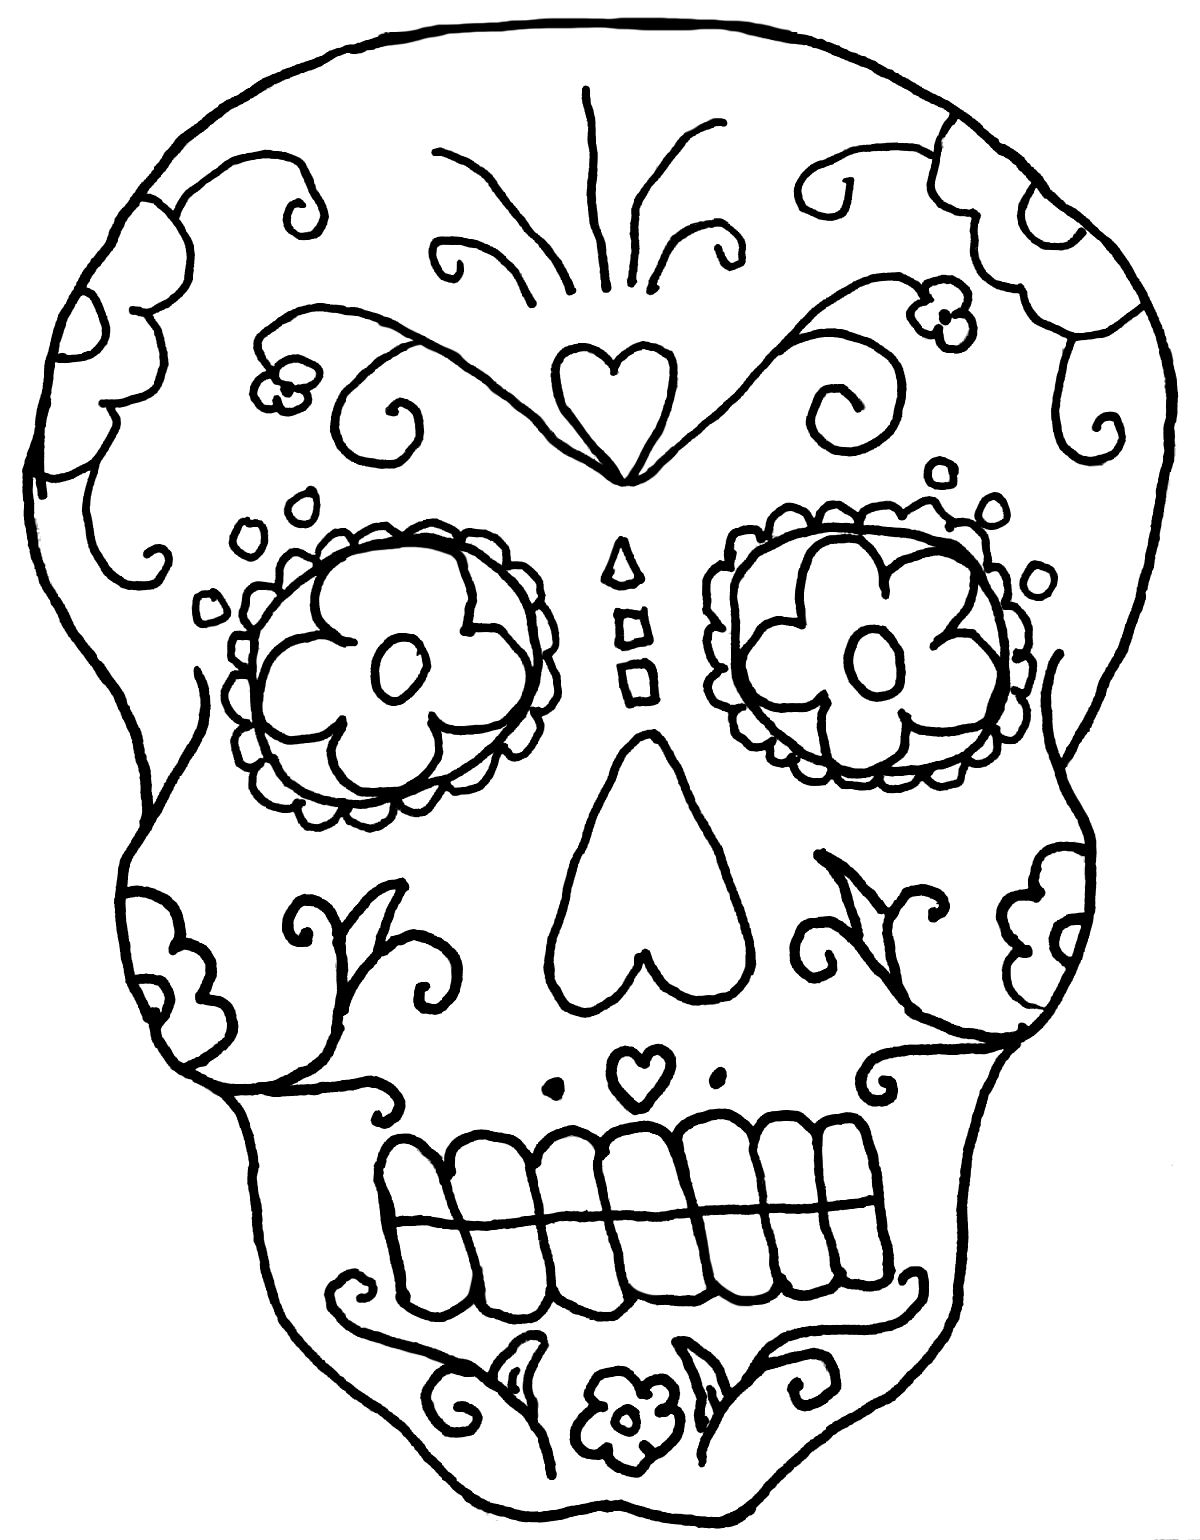 Uncategorized Day Of The Dead Coloring free printable day of the dead coloring pages best for adults